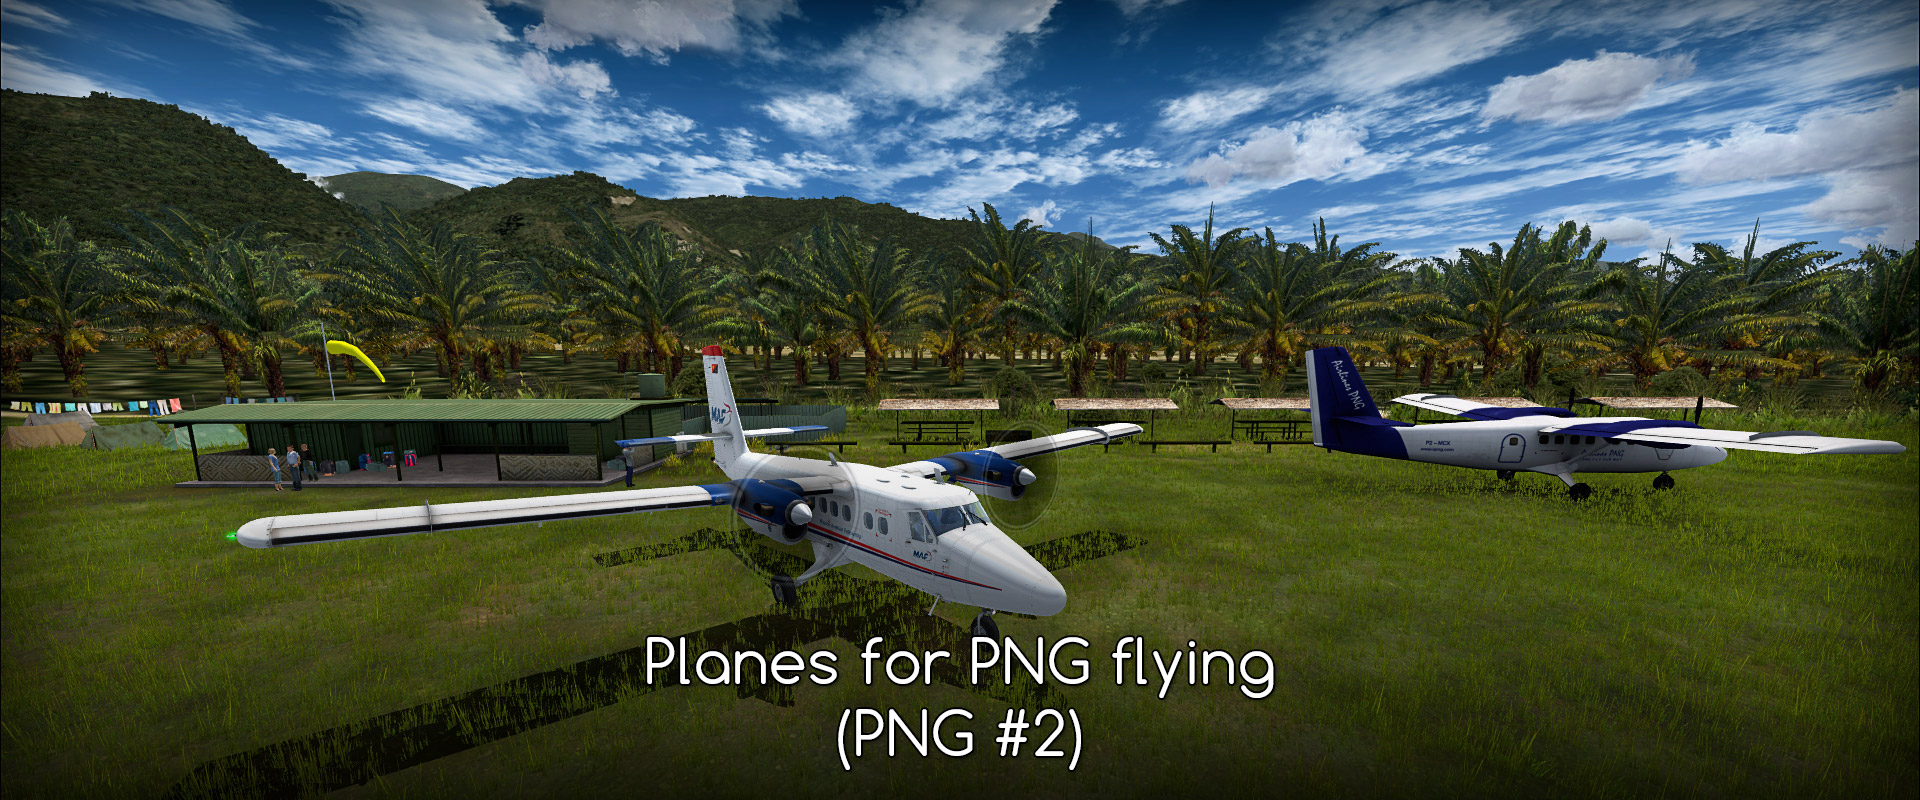 PNG #2 – FSX/P3D planes for PNG flying